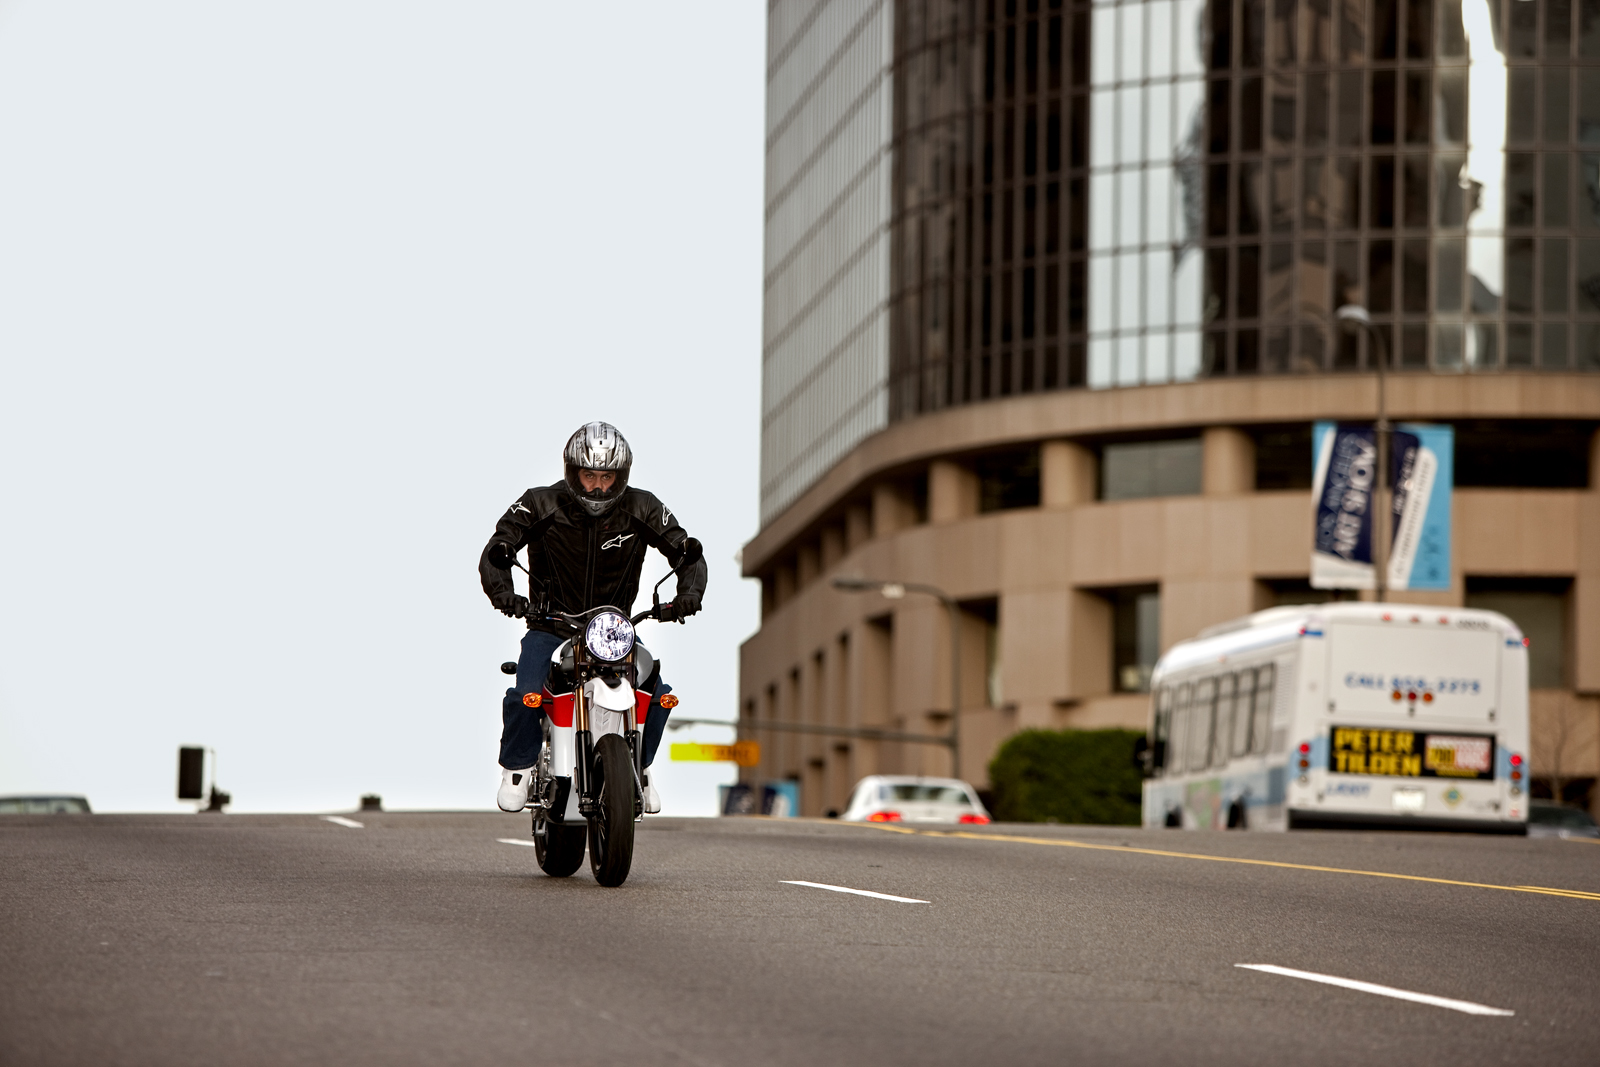 '.2010 Zero S Electric Motorcycle: Los Angeles - Downhill.'